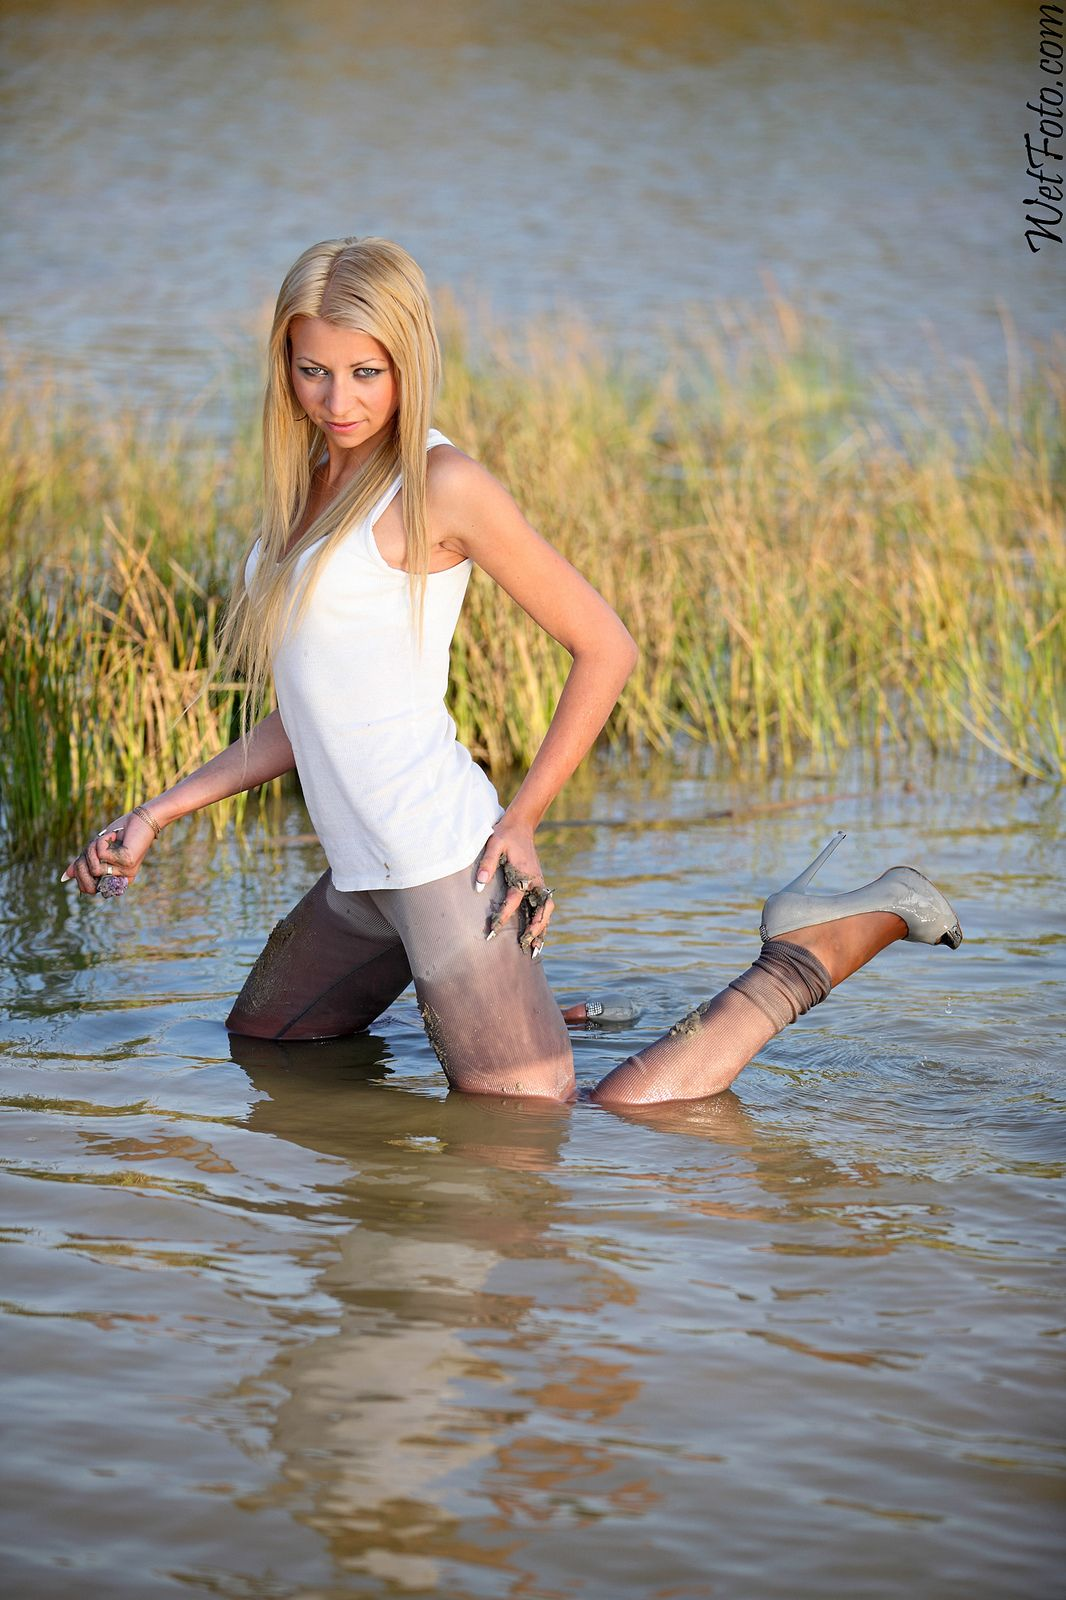 toutes les tailles | #196.1 crazy tights wetlook with hot blond